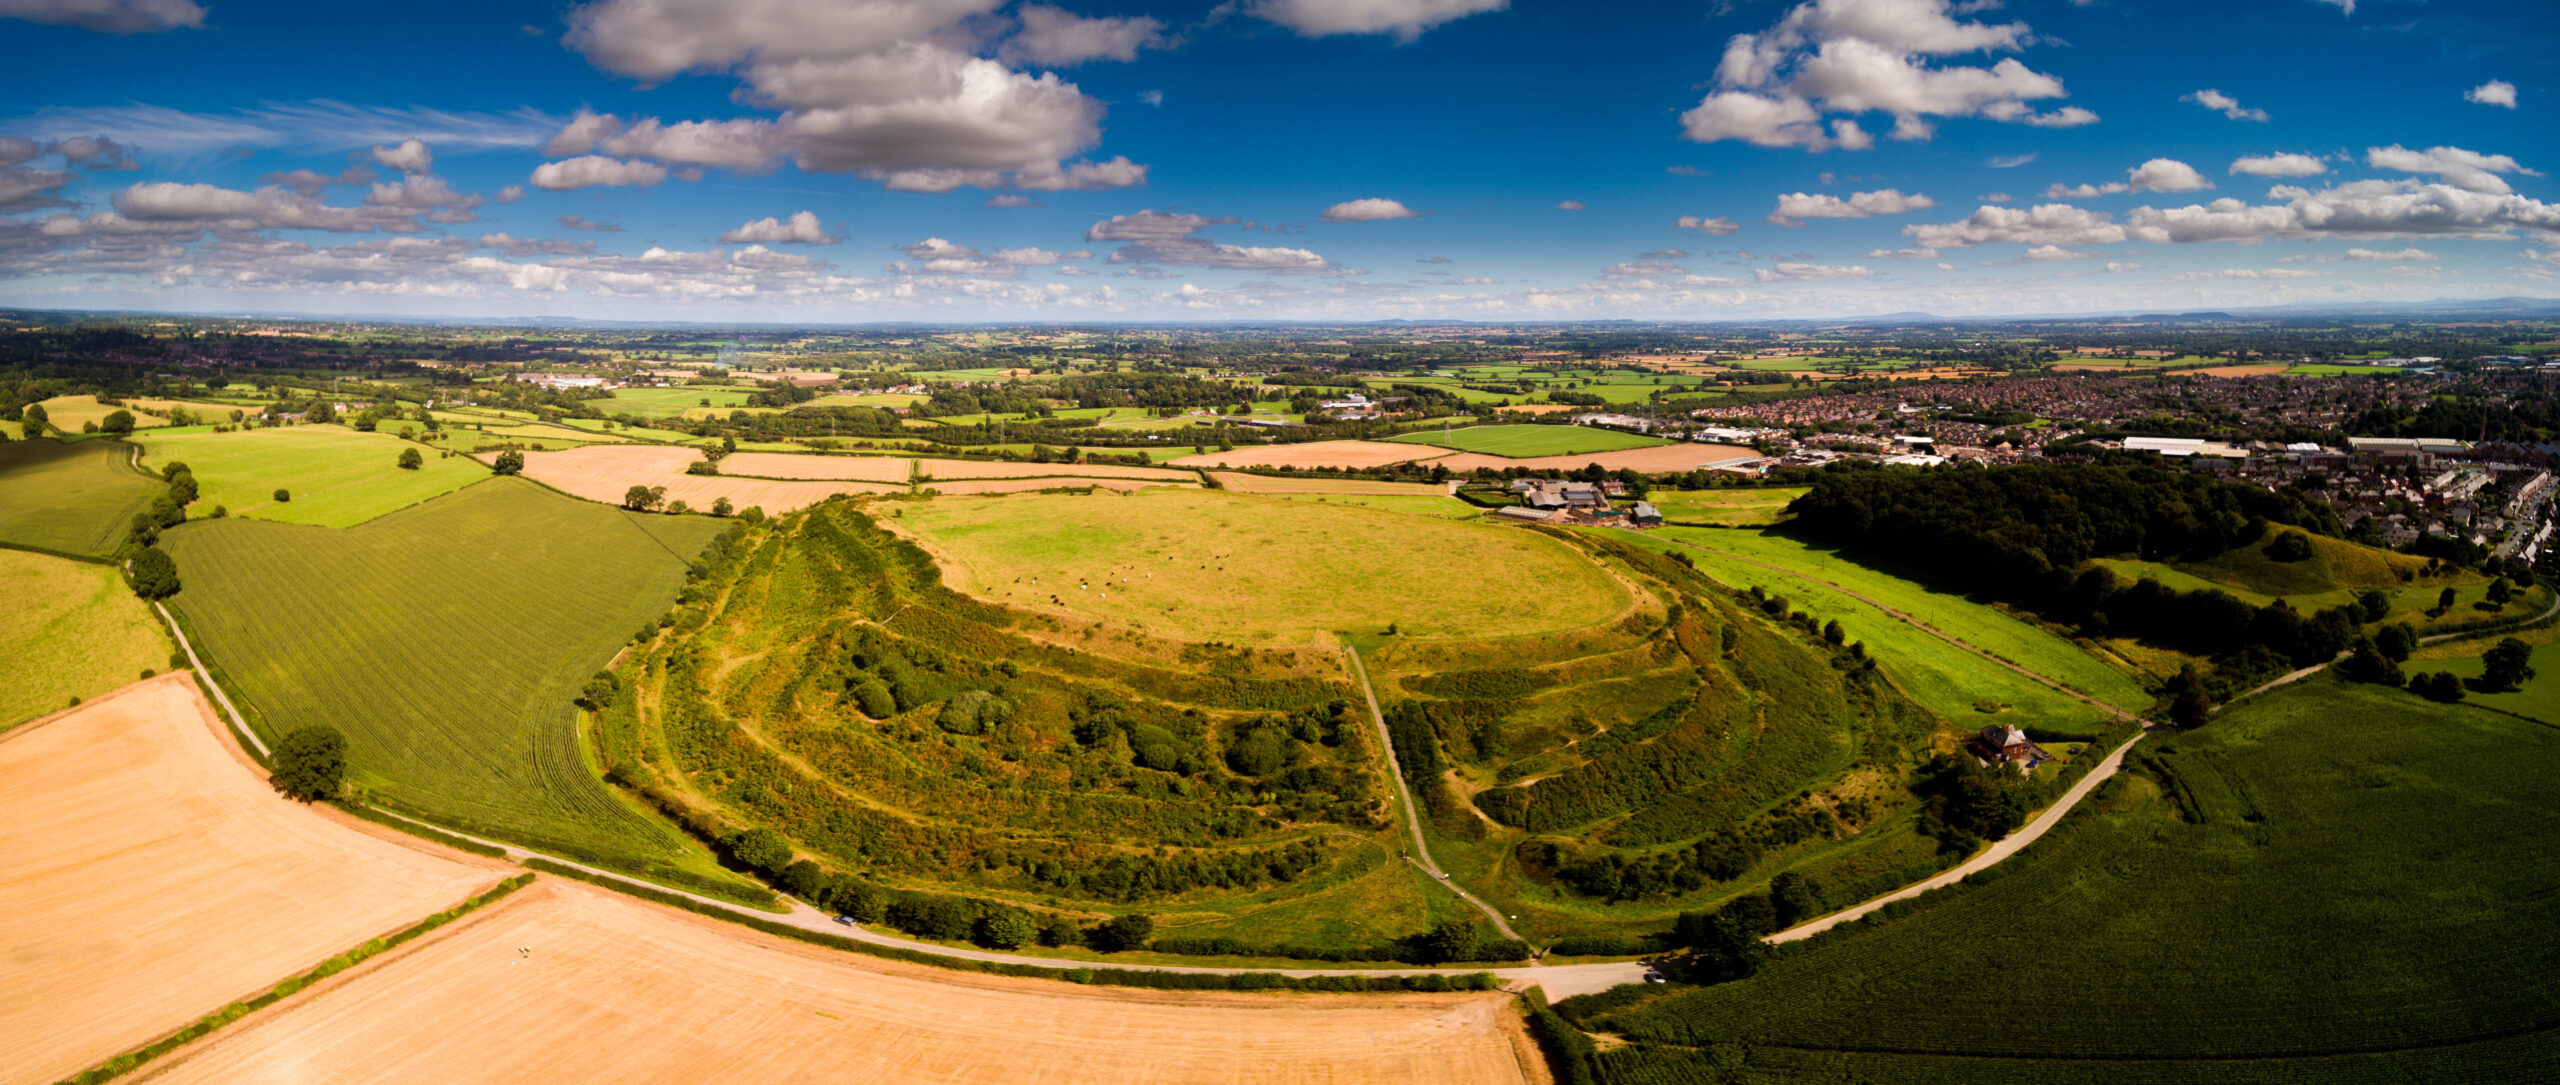 How to spend a long weekend in Shropshire